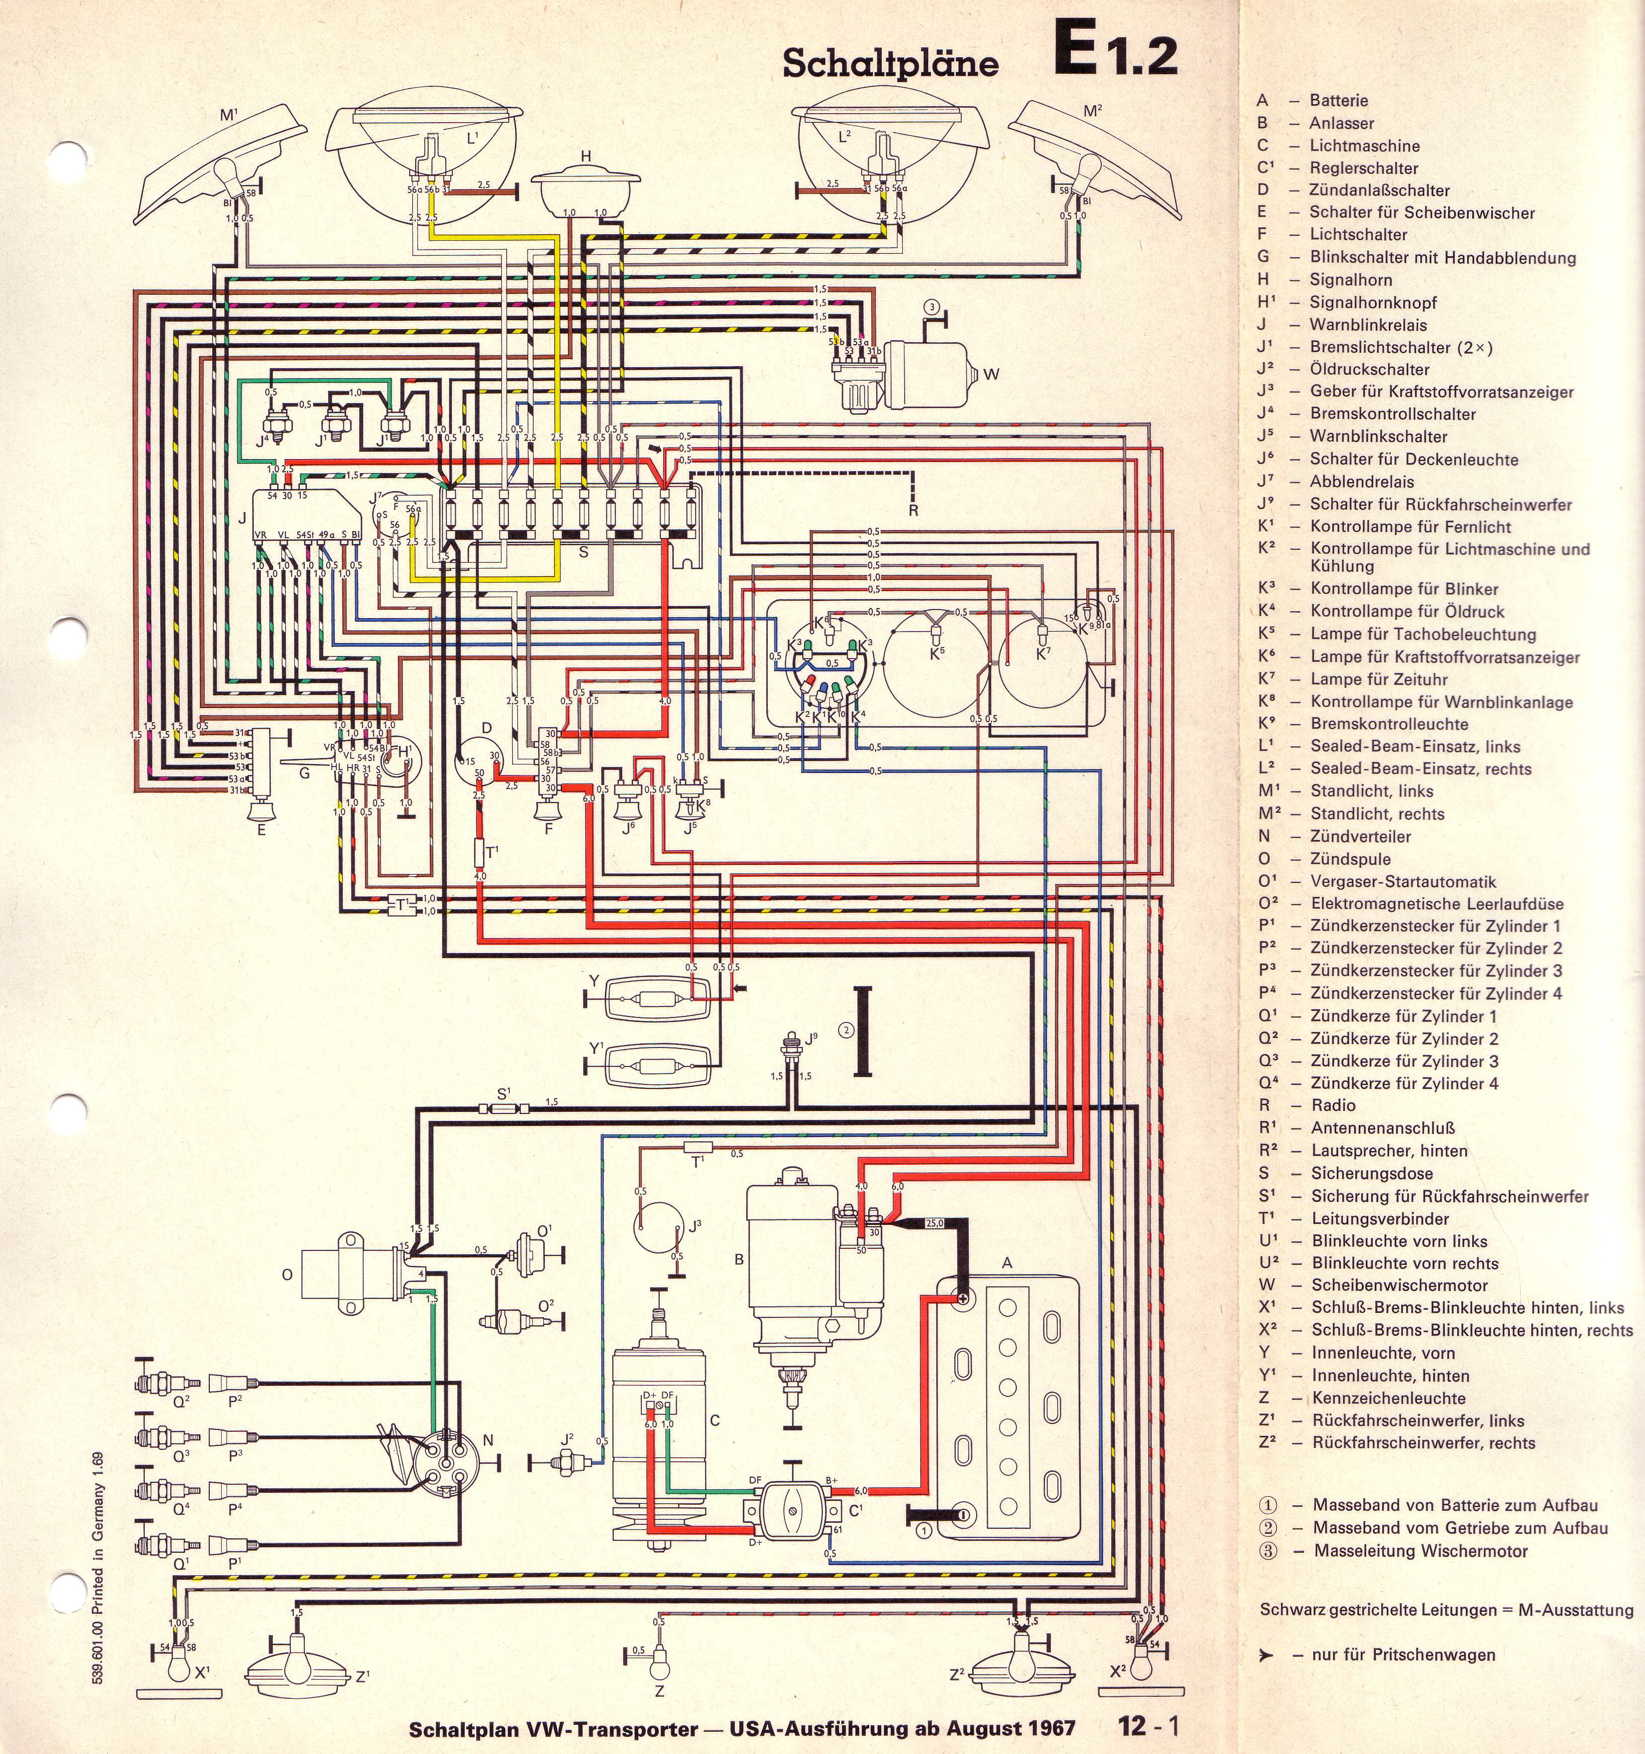 hight resolution of 1977 vw bug wiring diagram wiring diagram experts1977 vw bus wiring diagram wiring diagram 1977 vw